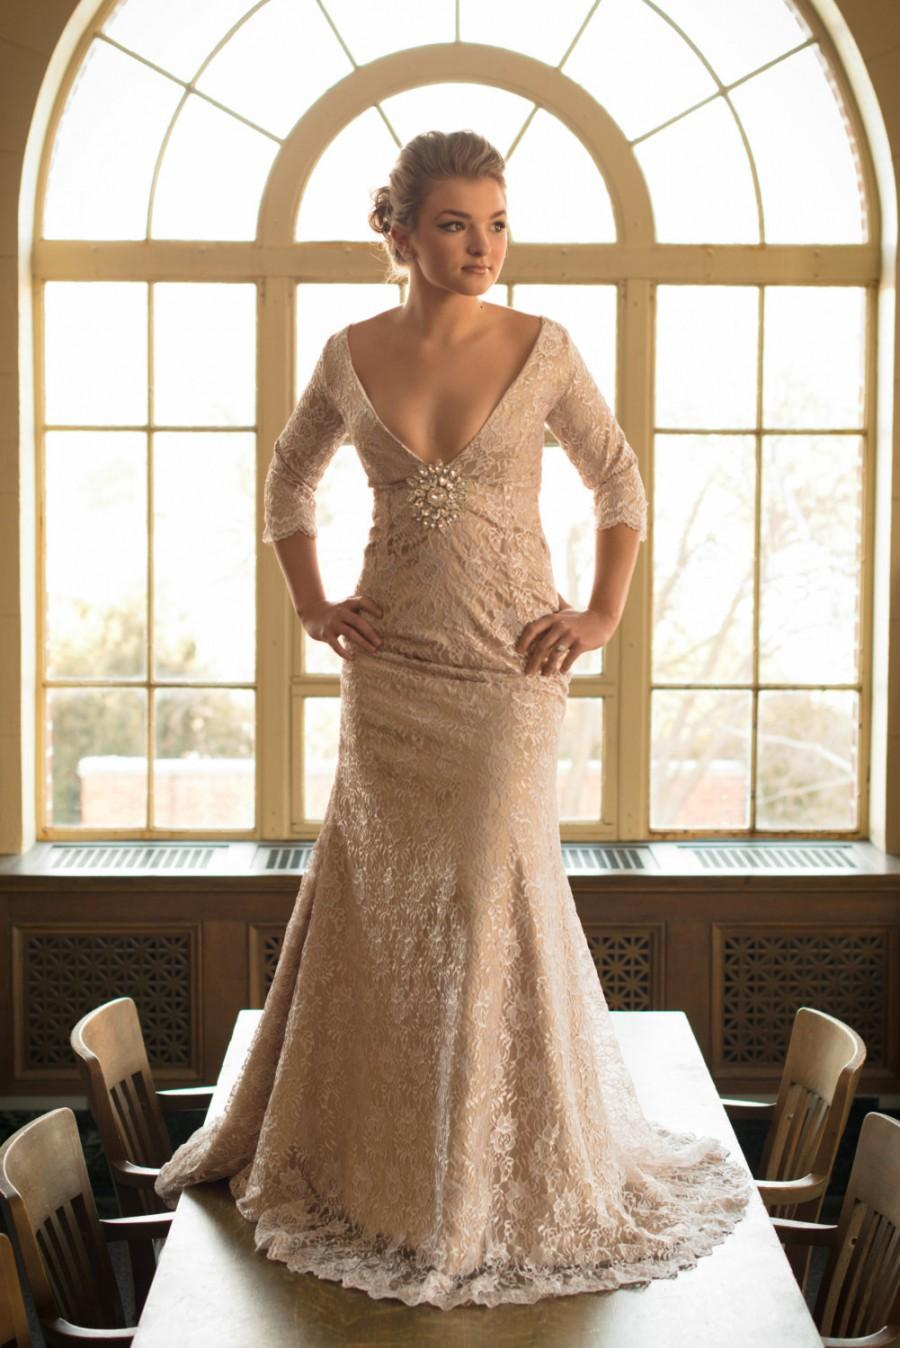 Mariage - Wedding gown with long sleeves, tea dyed lace and low V front /// Garbo Gown